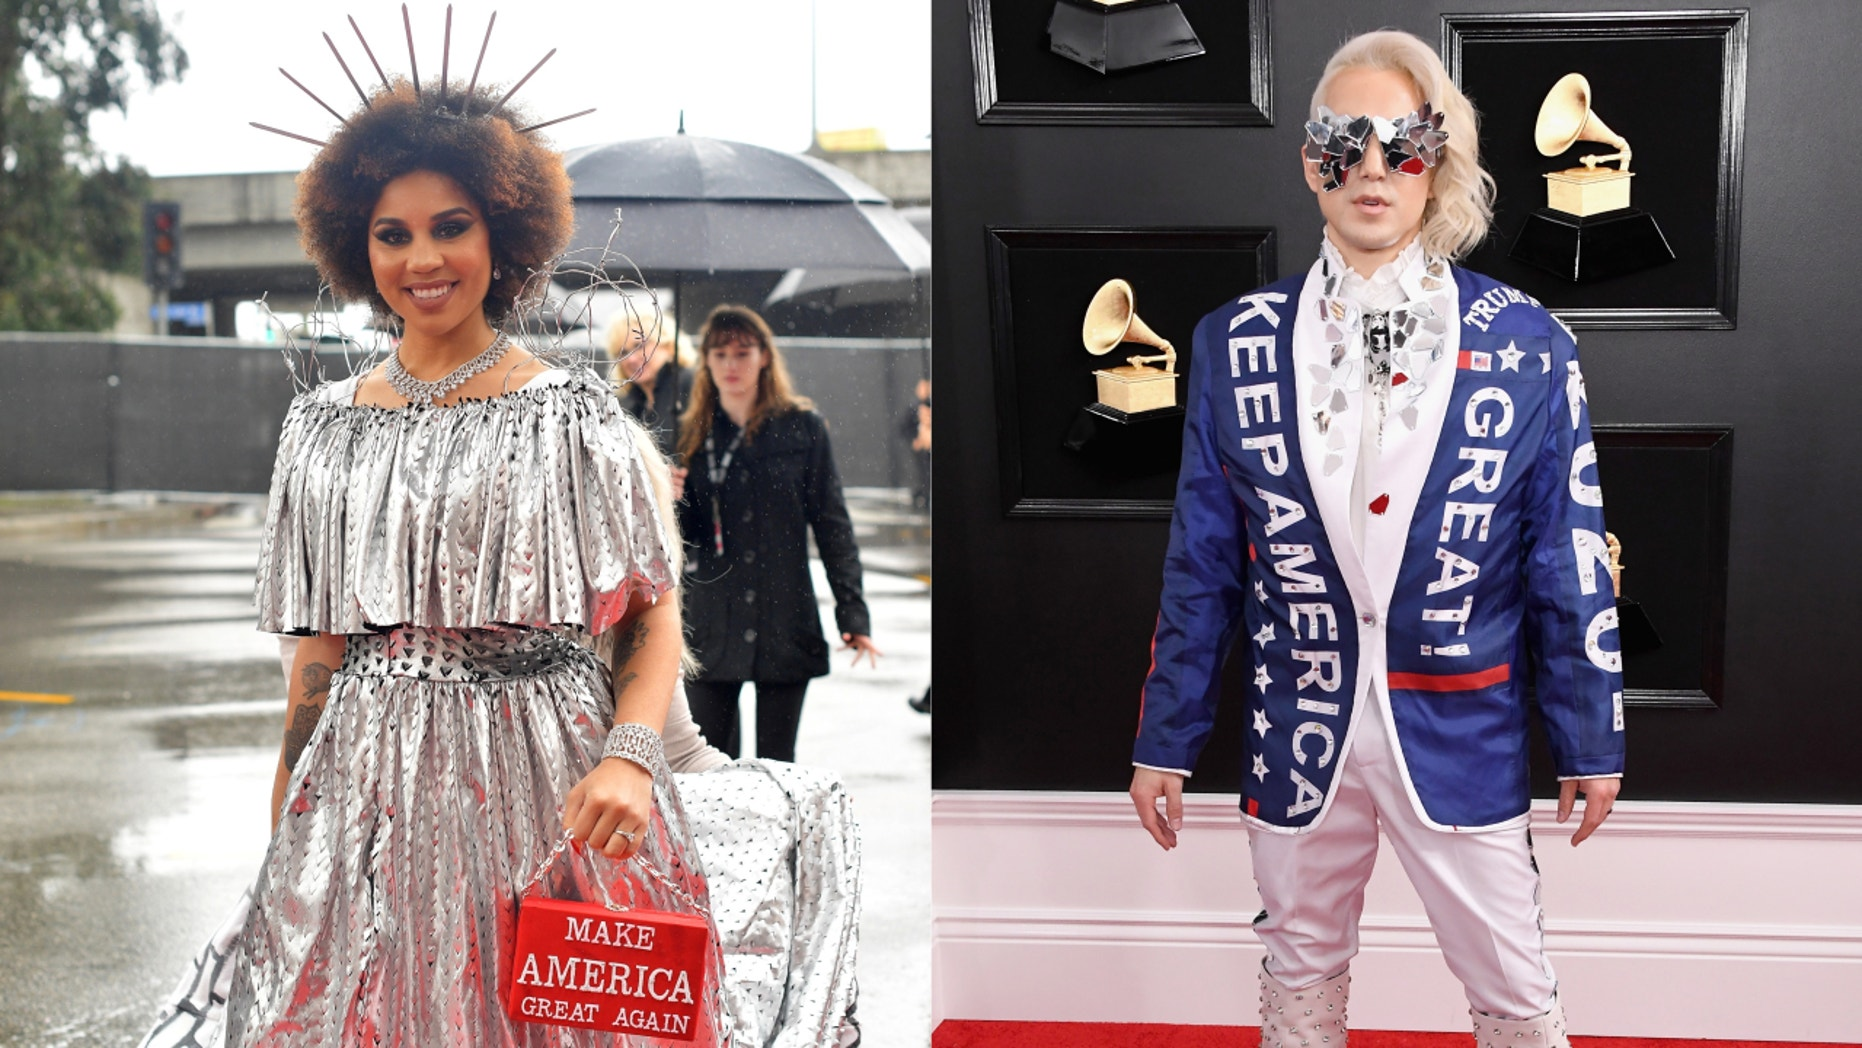 Grammys 2019: Joy Villa dresses as Trump's border wall on red carpet